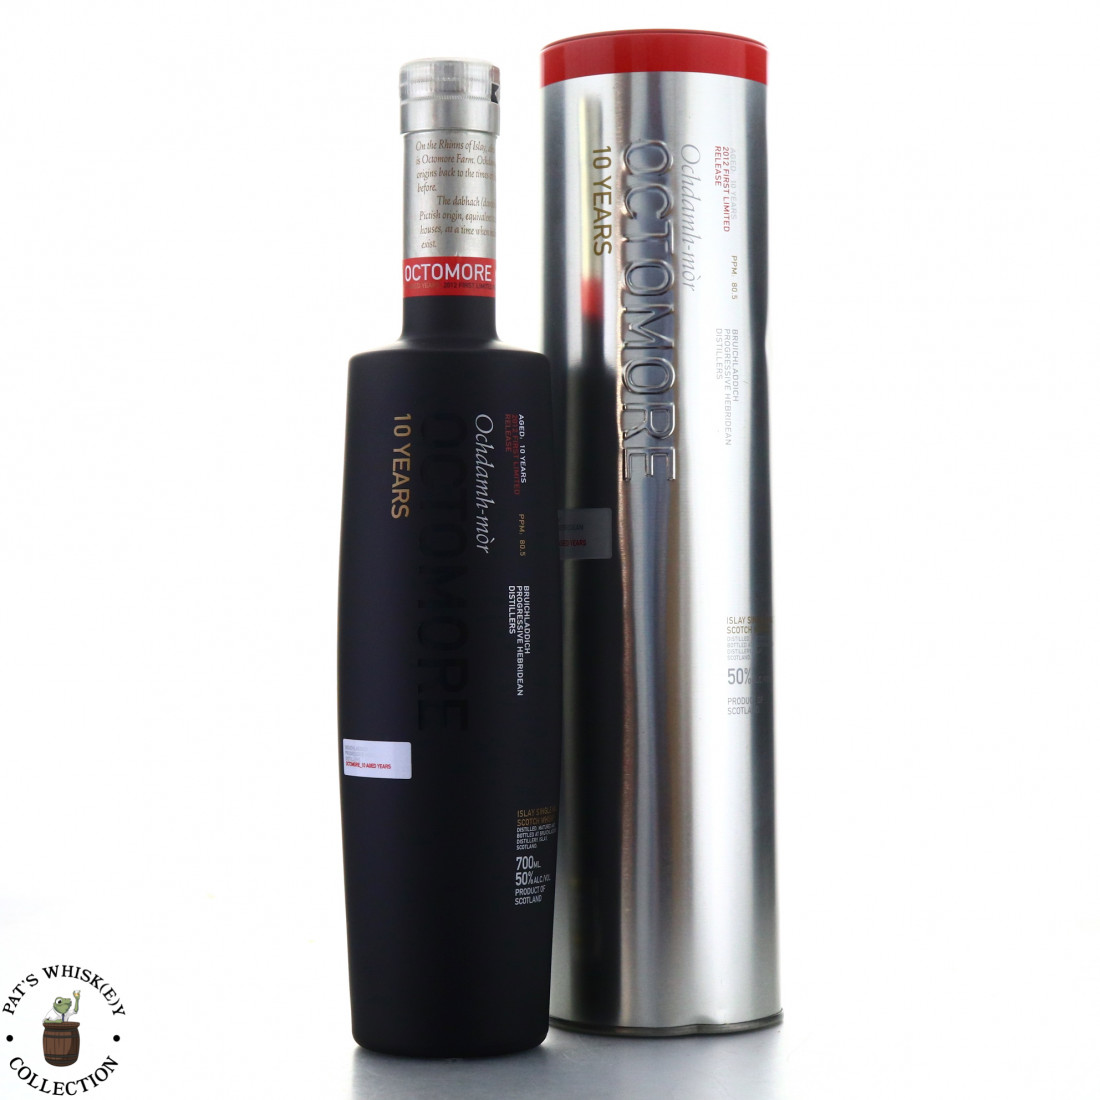 Octomore 10 Year Old 2012 First Release